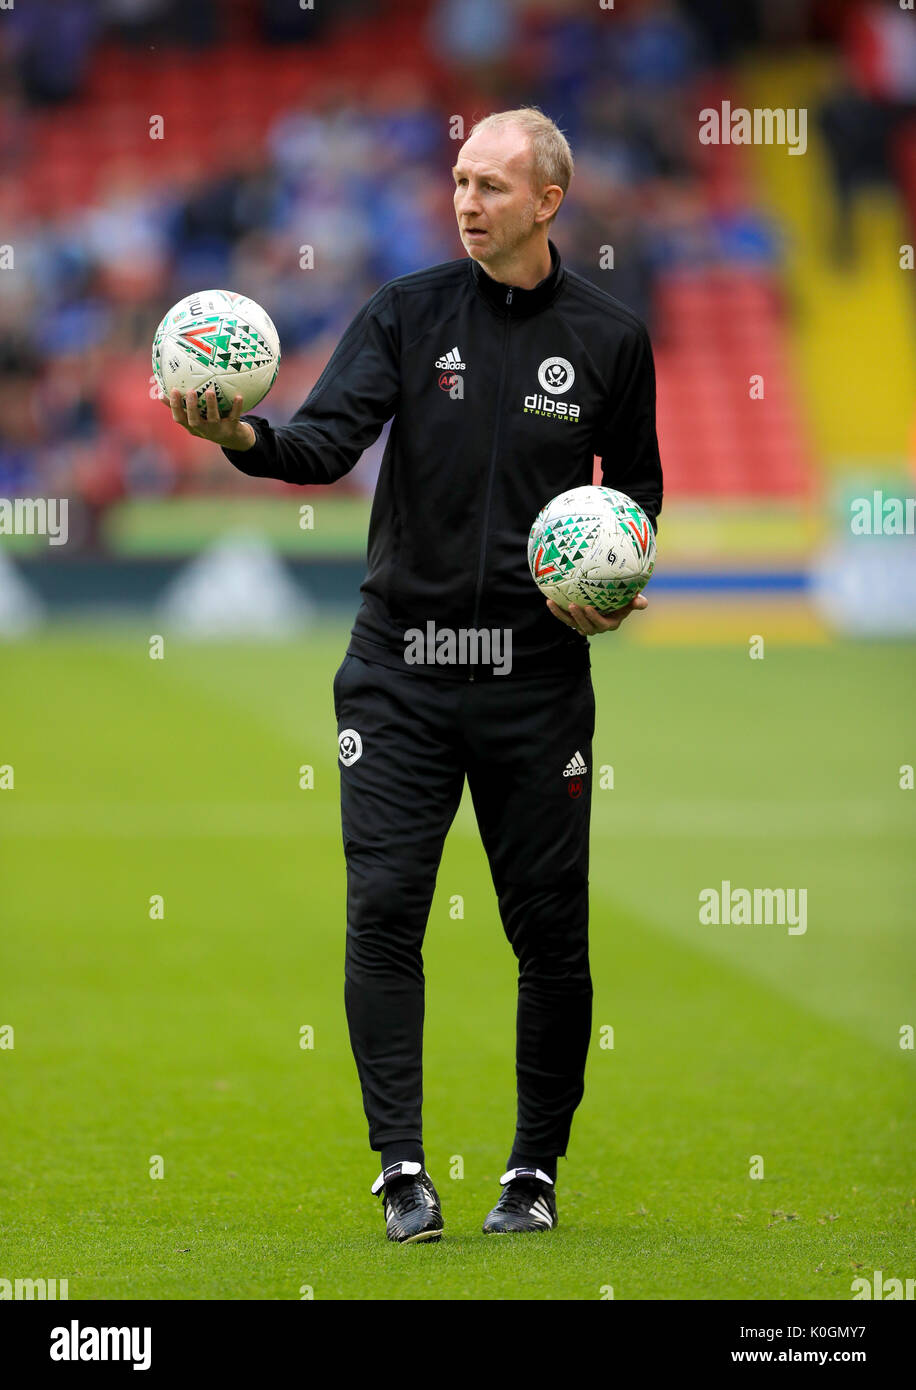 Sheffield United Assistant Manager Alan Knill during the Carabao Cup, Second Round match at Bramall Lane, Sheffield. PRESS ASSOCIATION Photo. Picture date: Tuesday August 22, 2017. See PA story SOCCER Sheff Utd. Photo credit should read: Tim Goode/PA Wire. RESTRICTIONS: EDITORIAL USE ONLY No use with unauthorised audio, video, data, fixture lists, club/league logos or 'live' services. Online in-match use limited to 75 images, no video emulation. No use in betting, games or single club/league/player publications. - Stock Image